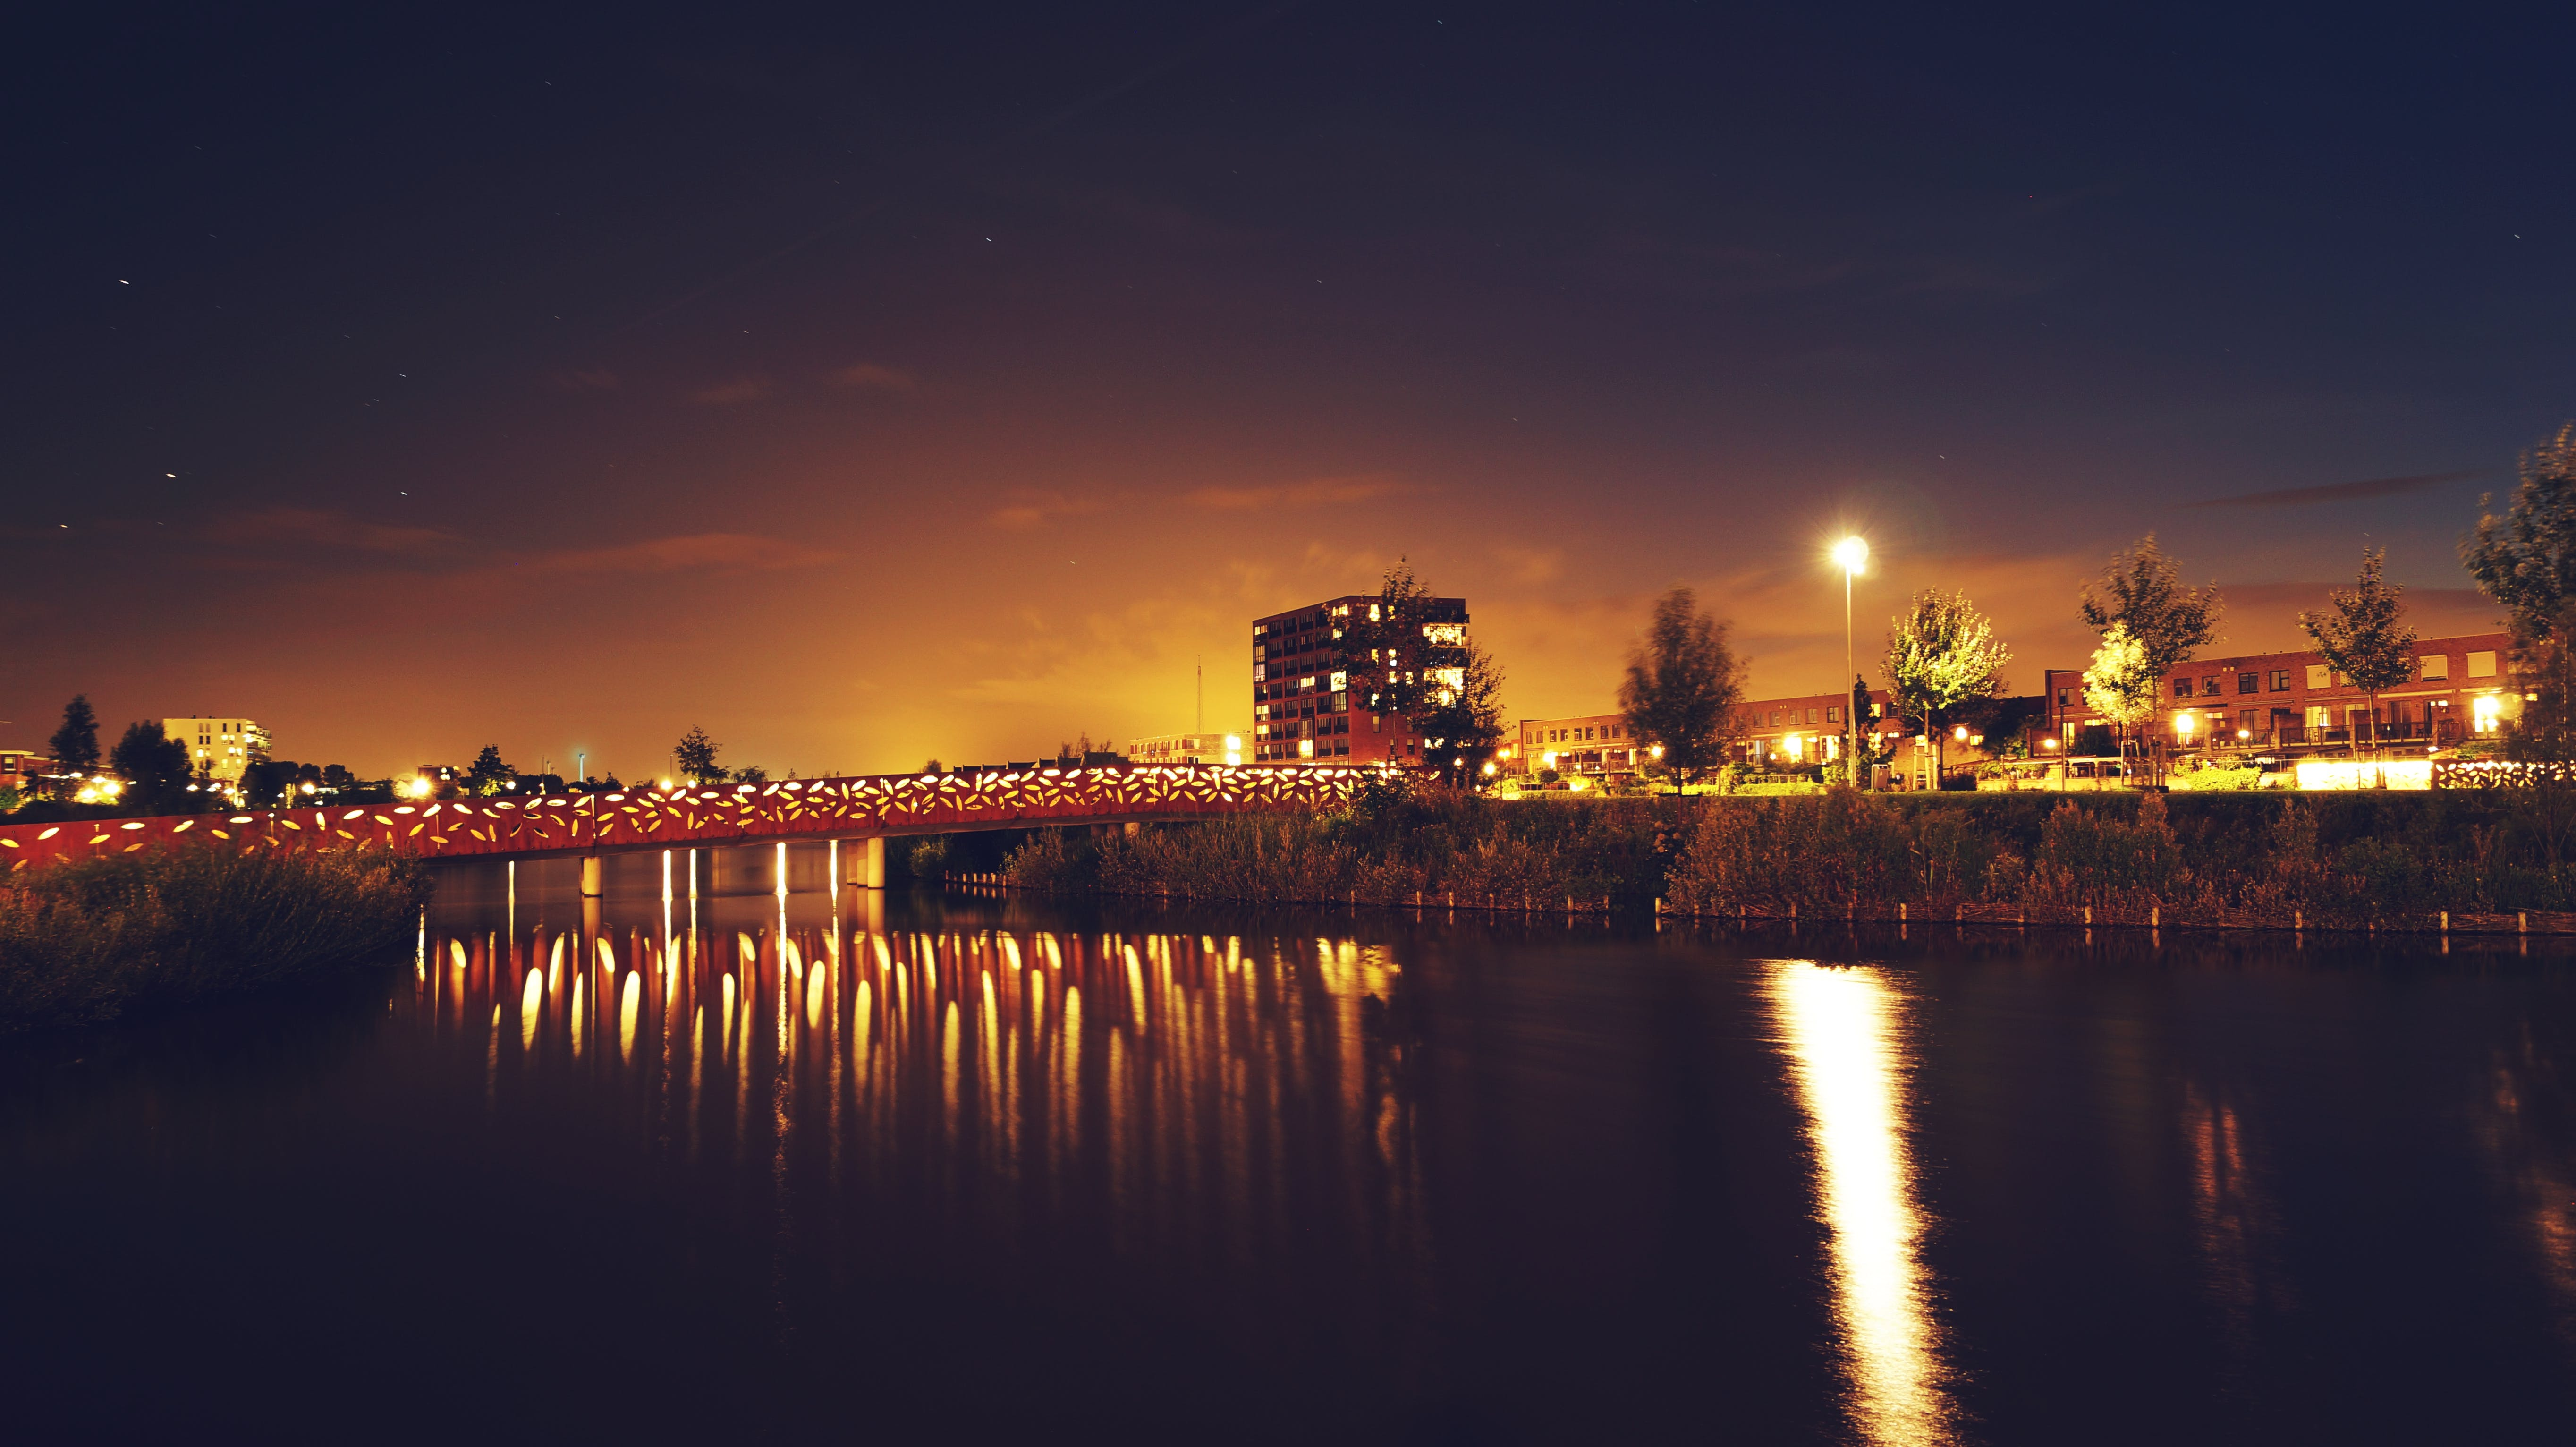 Bridge over Water Across Building during Nighttime